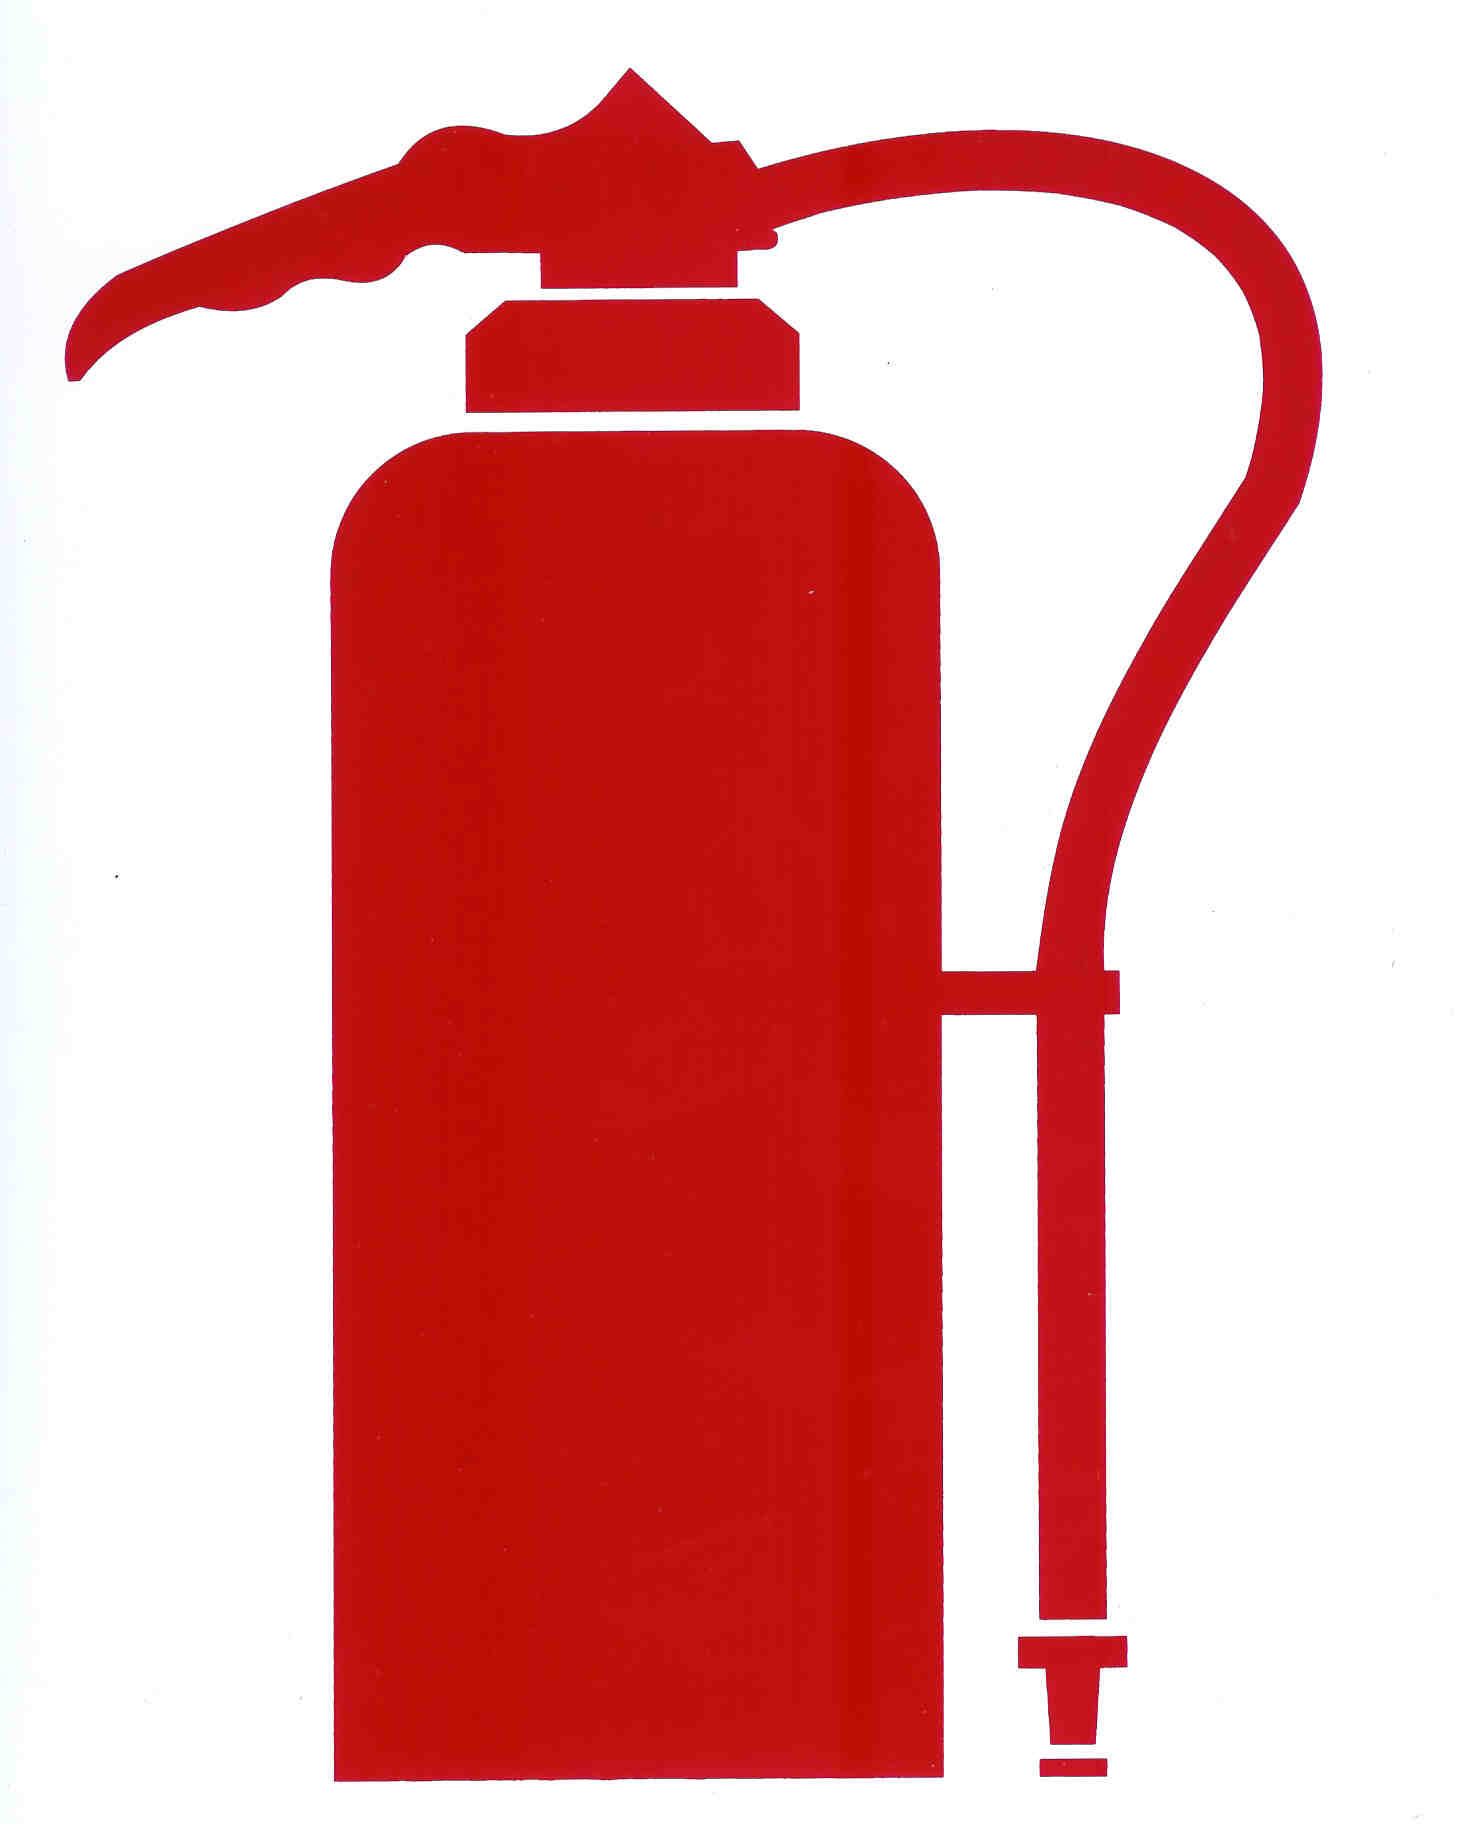 Free Fire Extinguisher Clipart, Download Free Clip Art, Free.